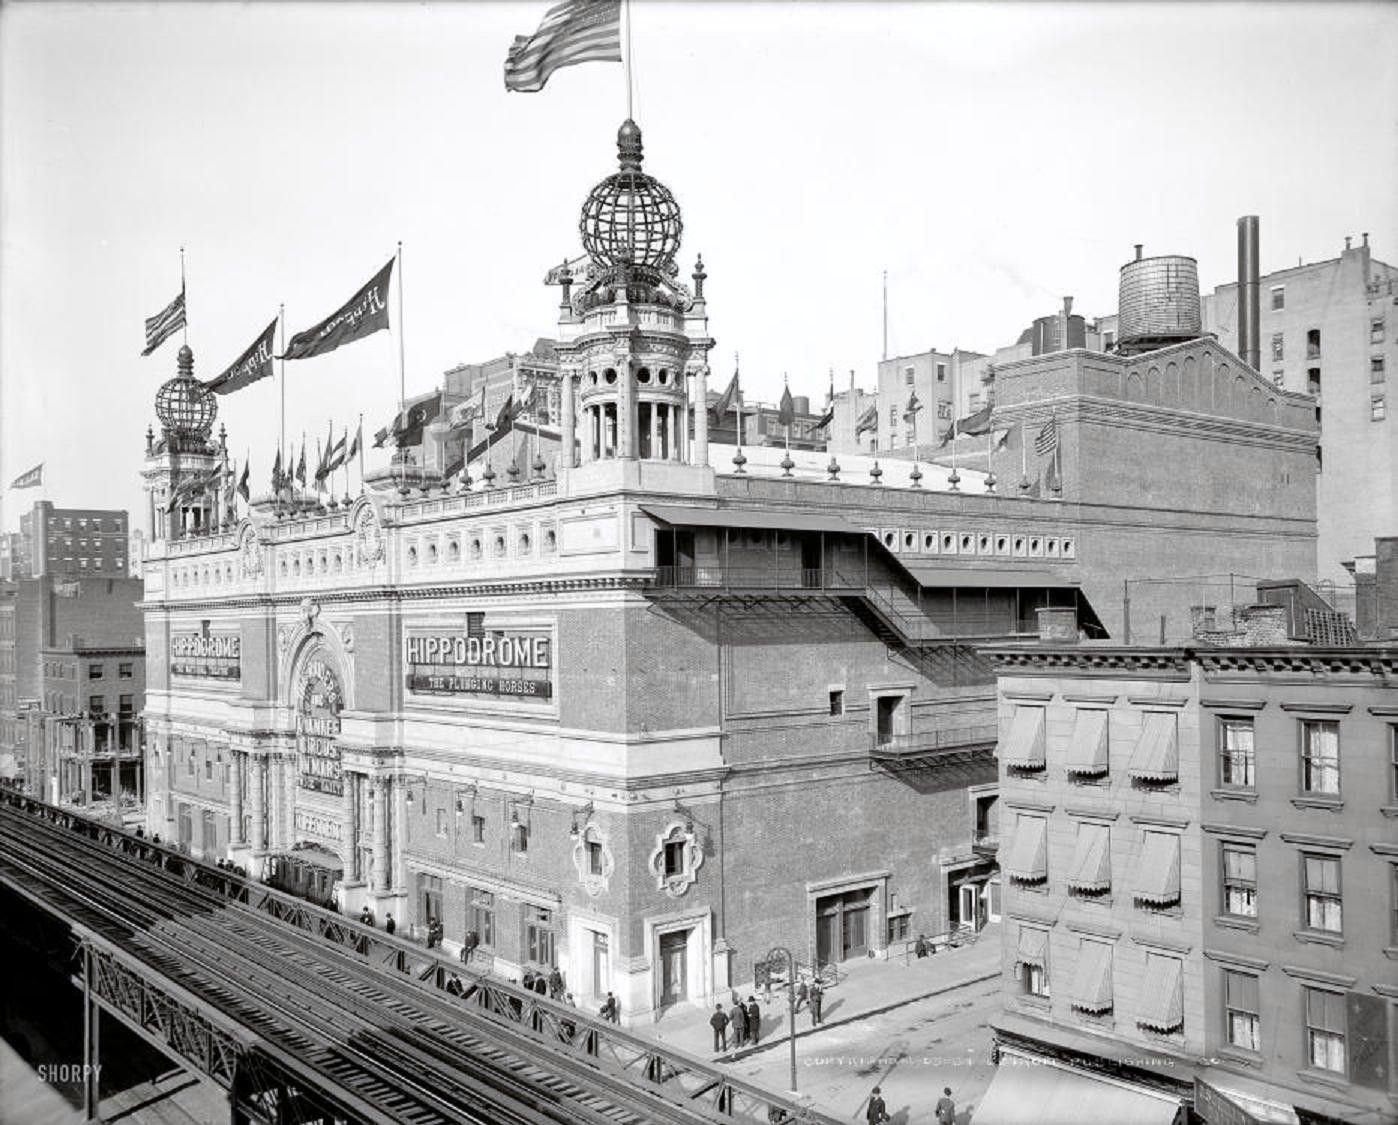 New York City, April 1905. At 5,200 seats, then the world's largest theater.